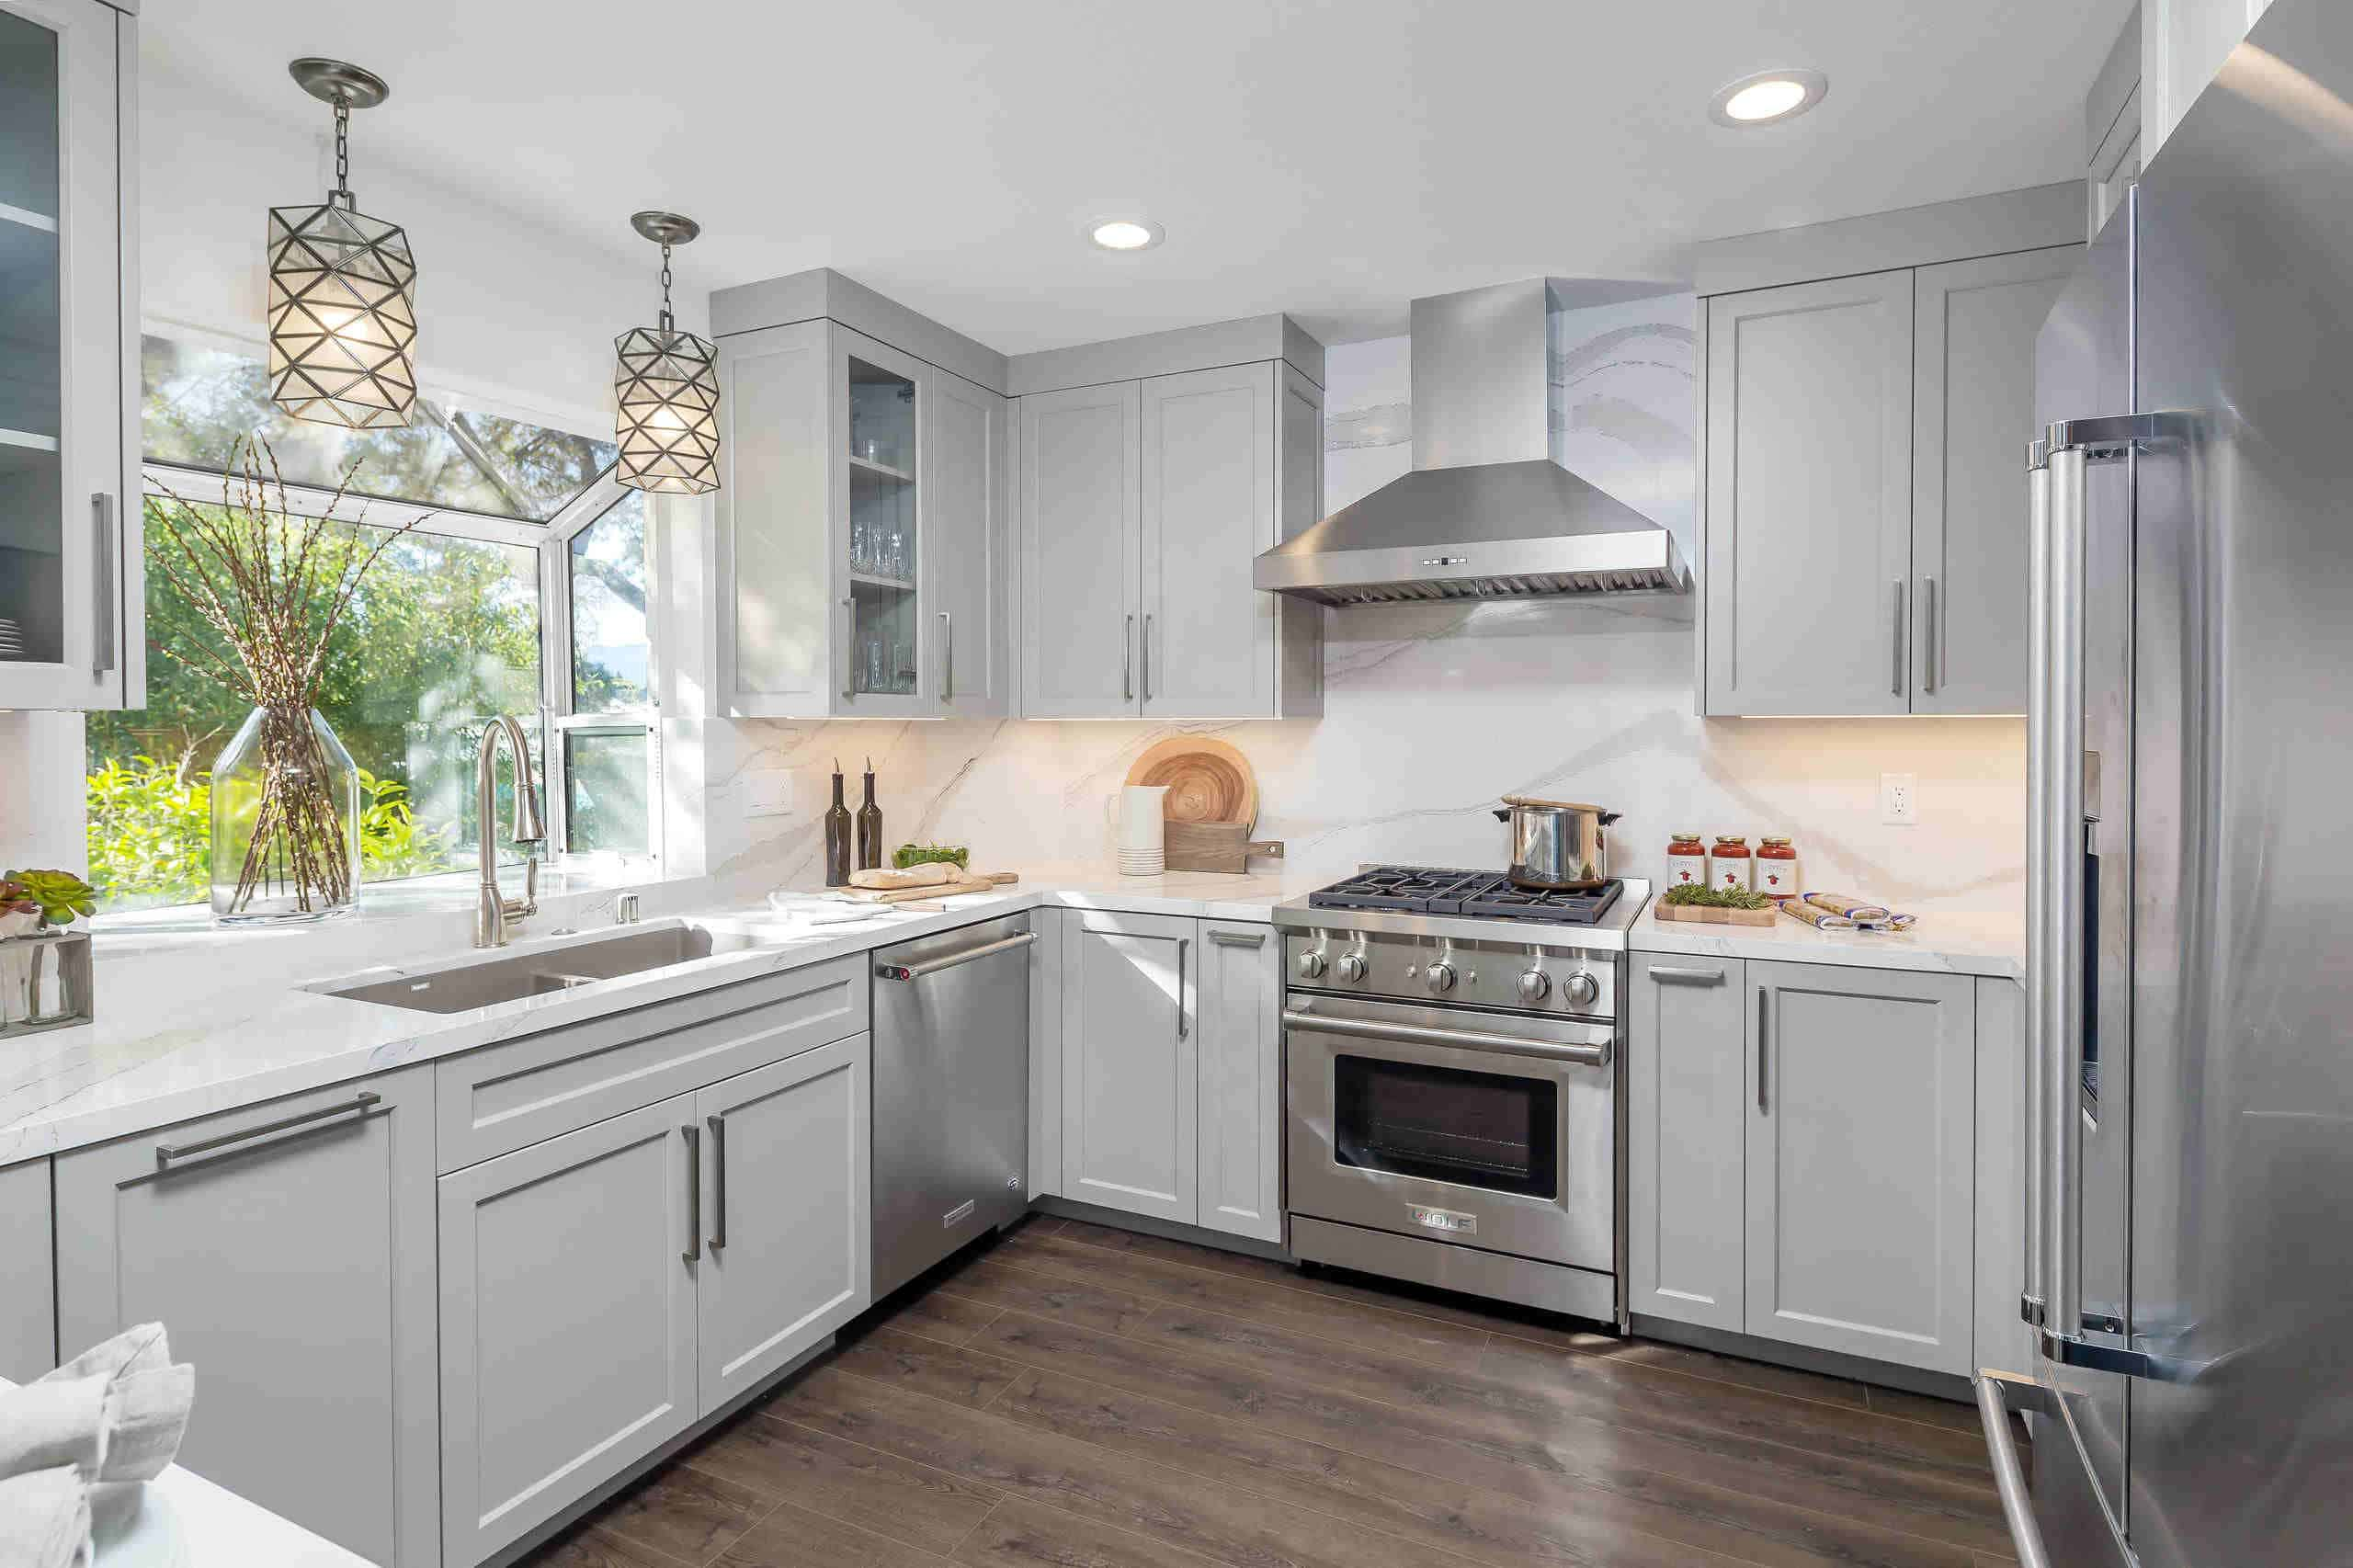 U-shaped kitchen with cabinets and light without island